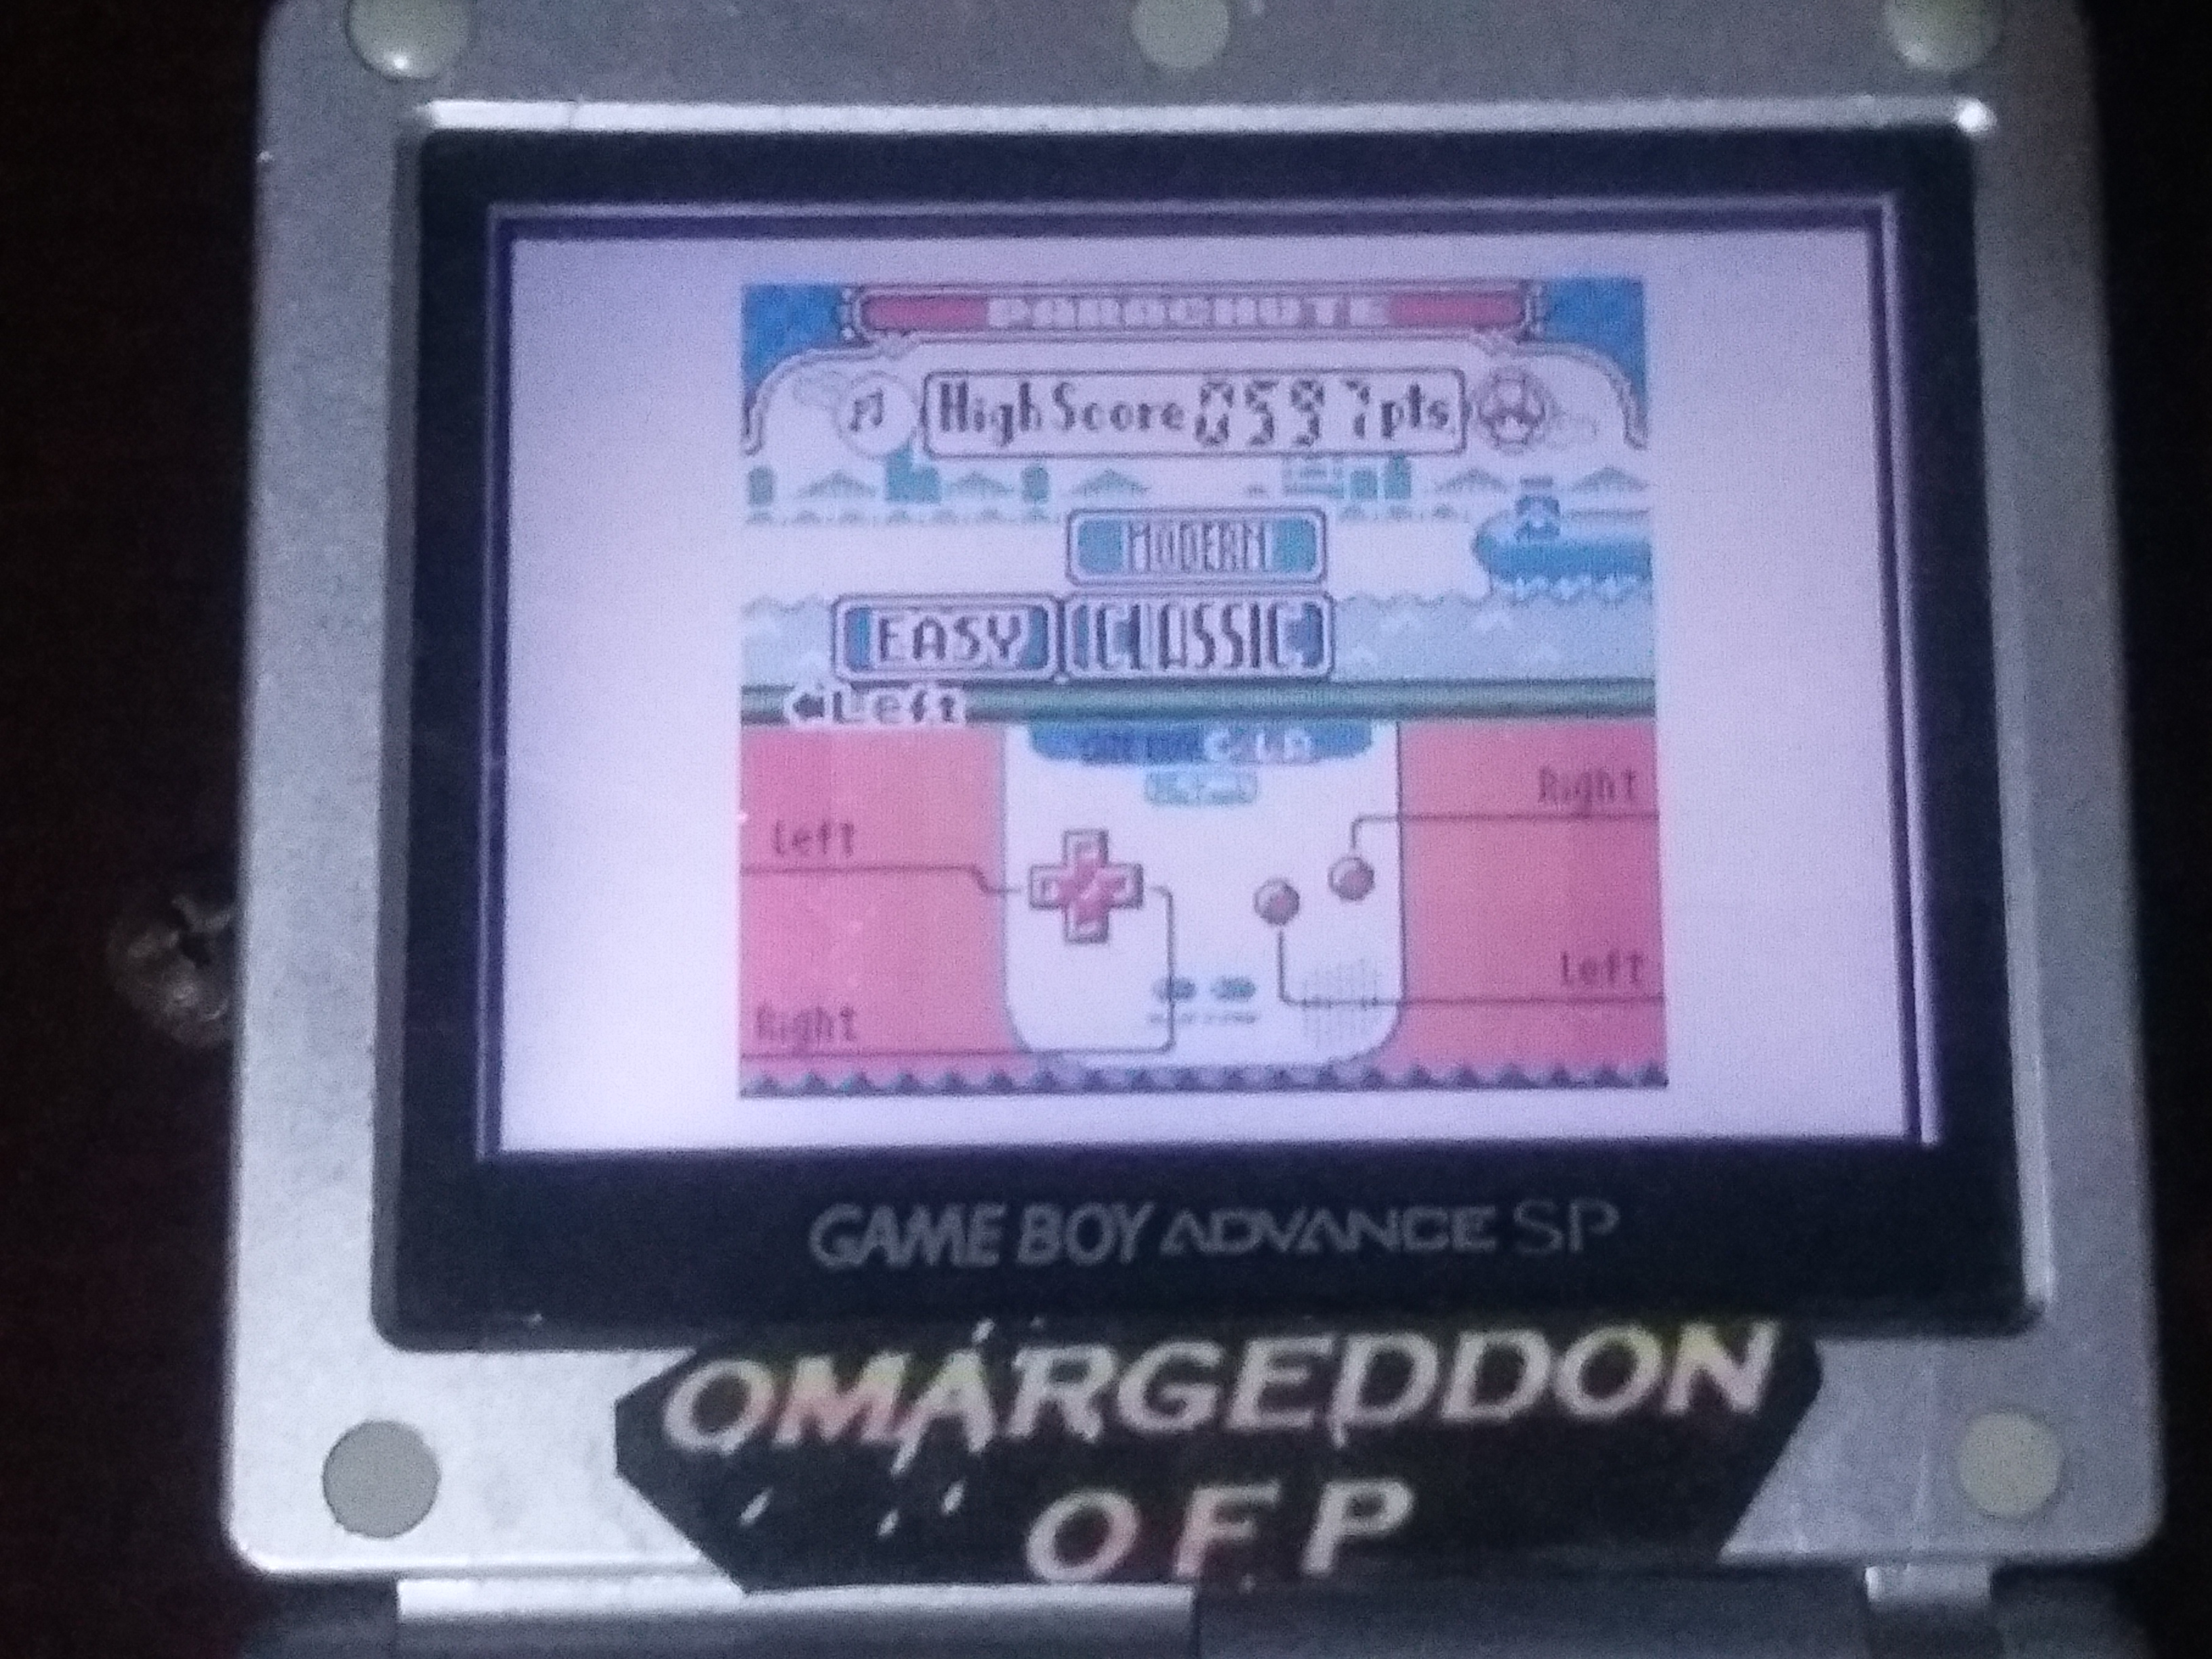 omargeddon: Game & Watch Gallery 2: Parachute: Classic: Easy (Game Boy Color) 597 points on 2018-01-06 23:16:04